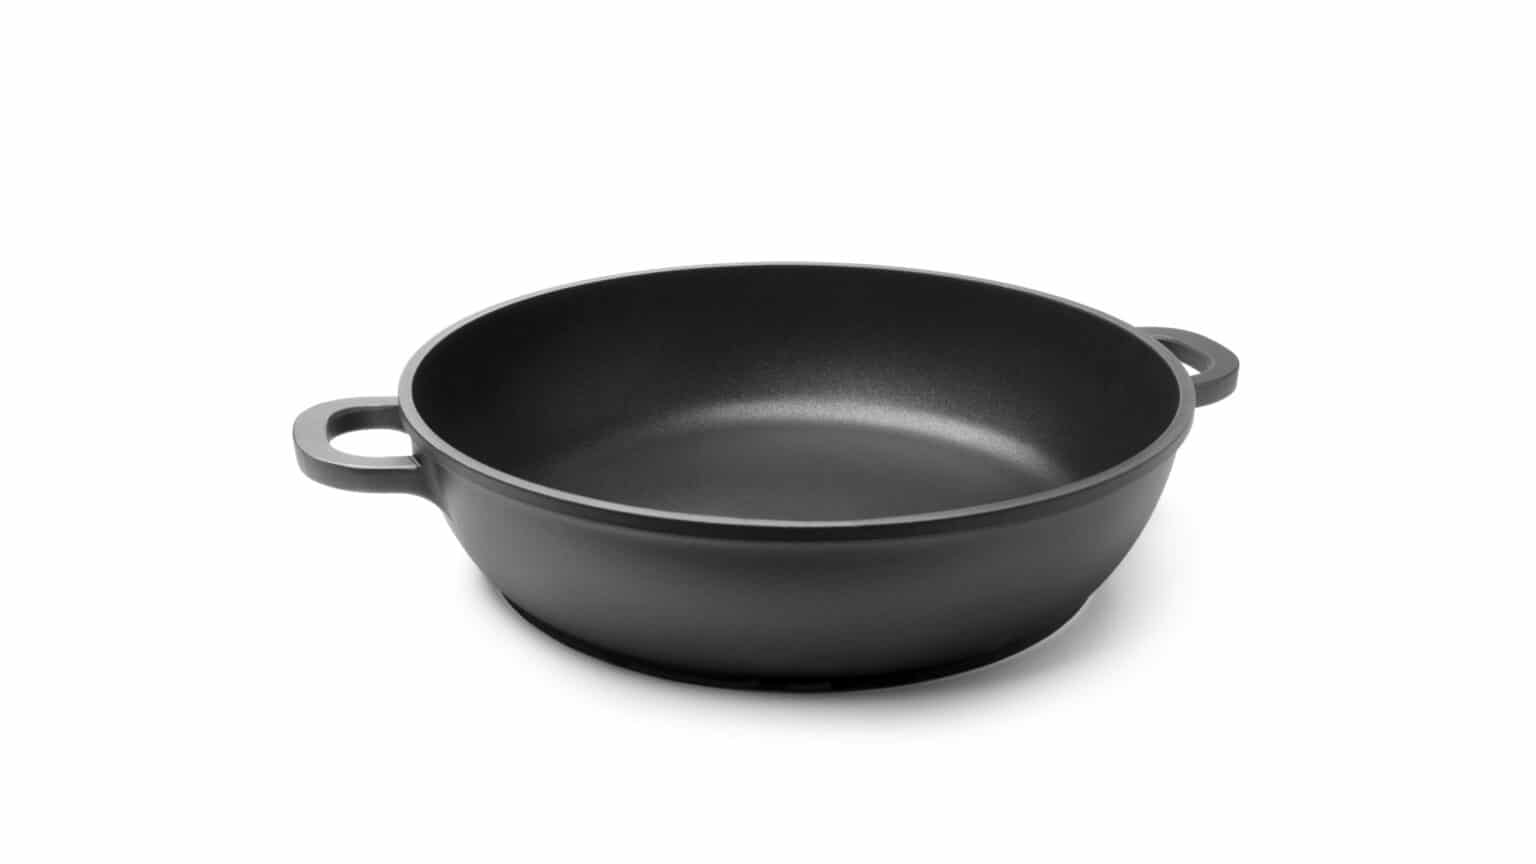 pan can be put in the oven